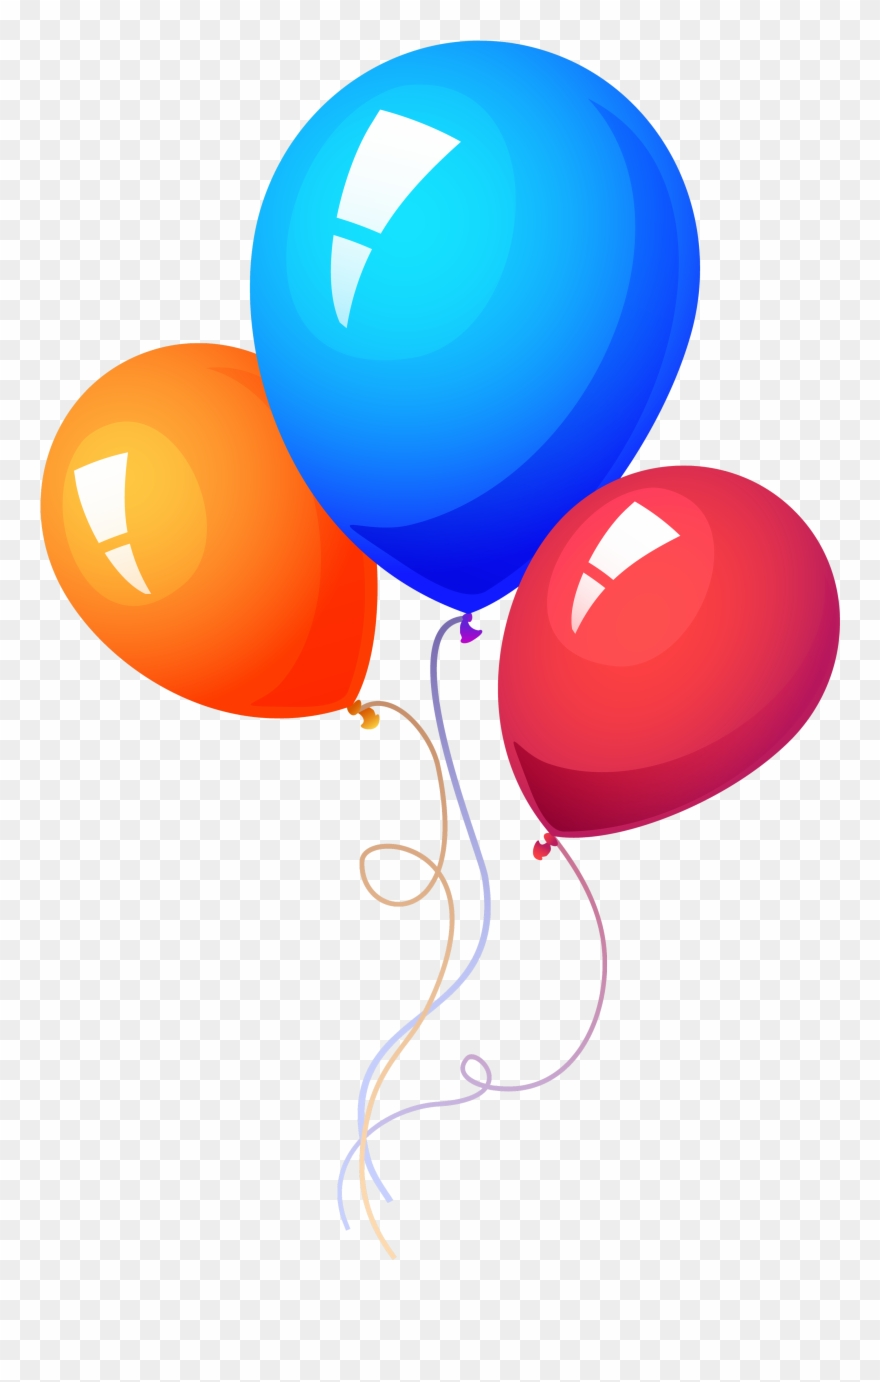 Clipart balloon transparent background. Images png